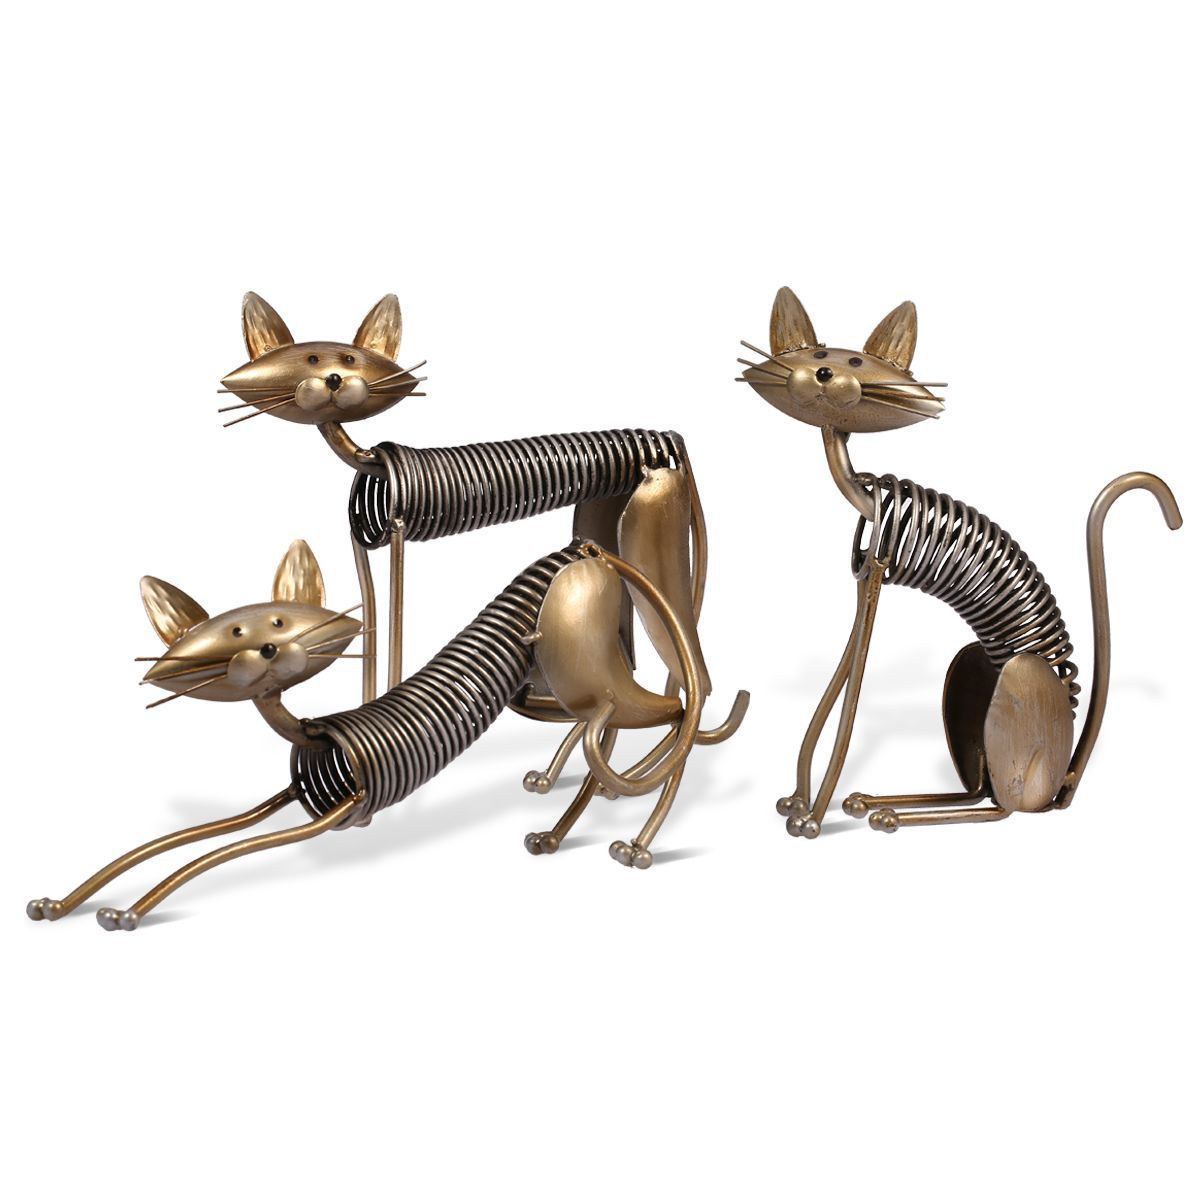 cat metal figurines promotionshop for promotional cat metal  - metal figurine iron art decoration cat shaped handicraft crafting figurineart decoration home ornaments